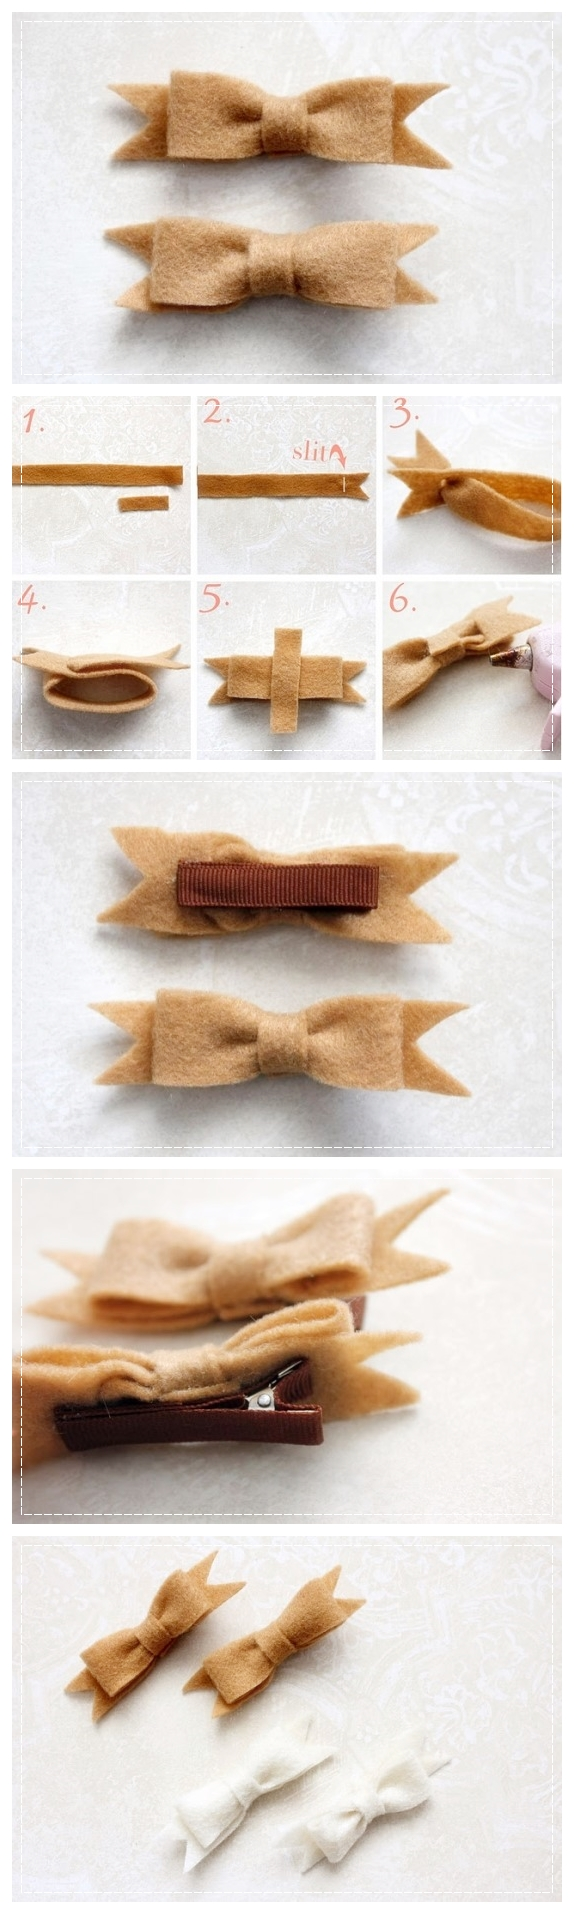 How To Make Hand Made Ribbon Pin DIY Step By Tutorial Instruction